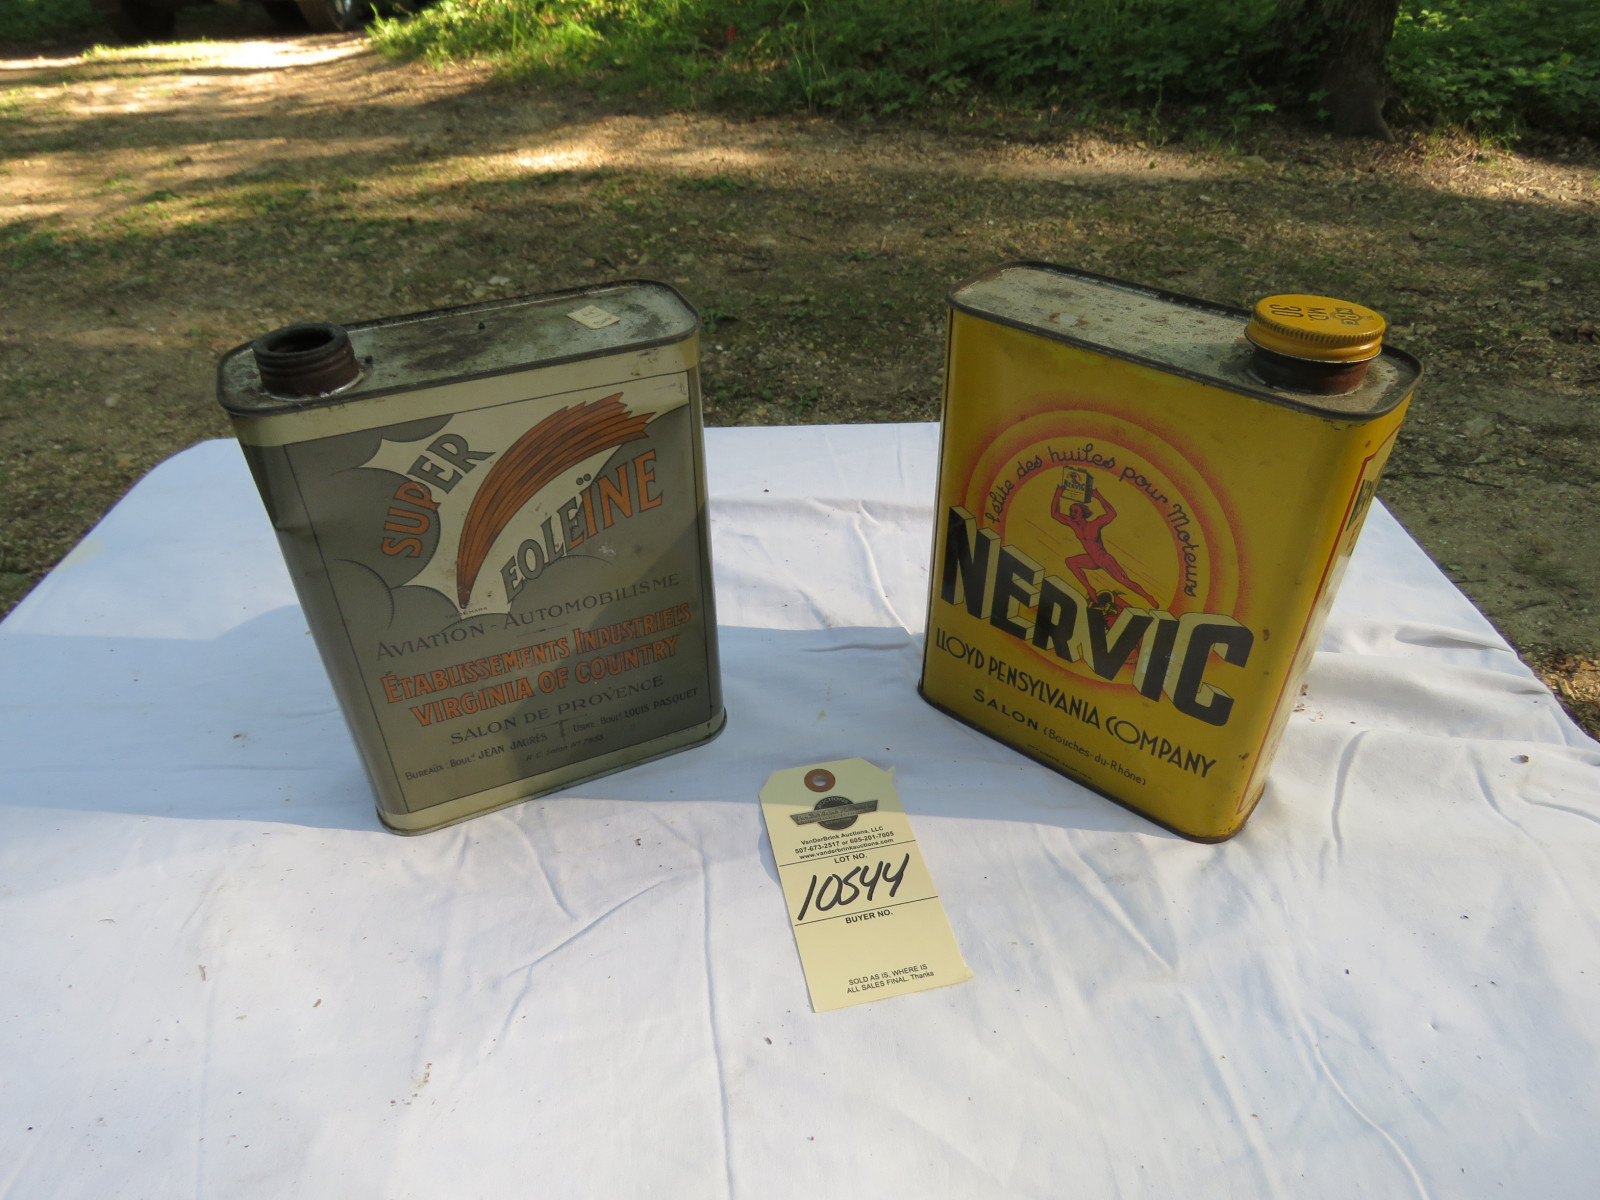 Super Eoleine and Nervic Oil Cans Empty - Image 1